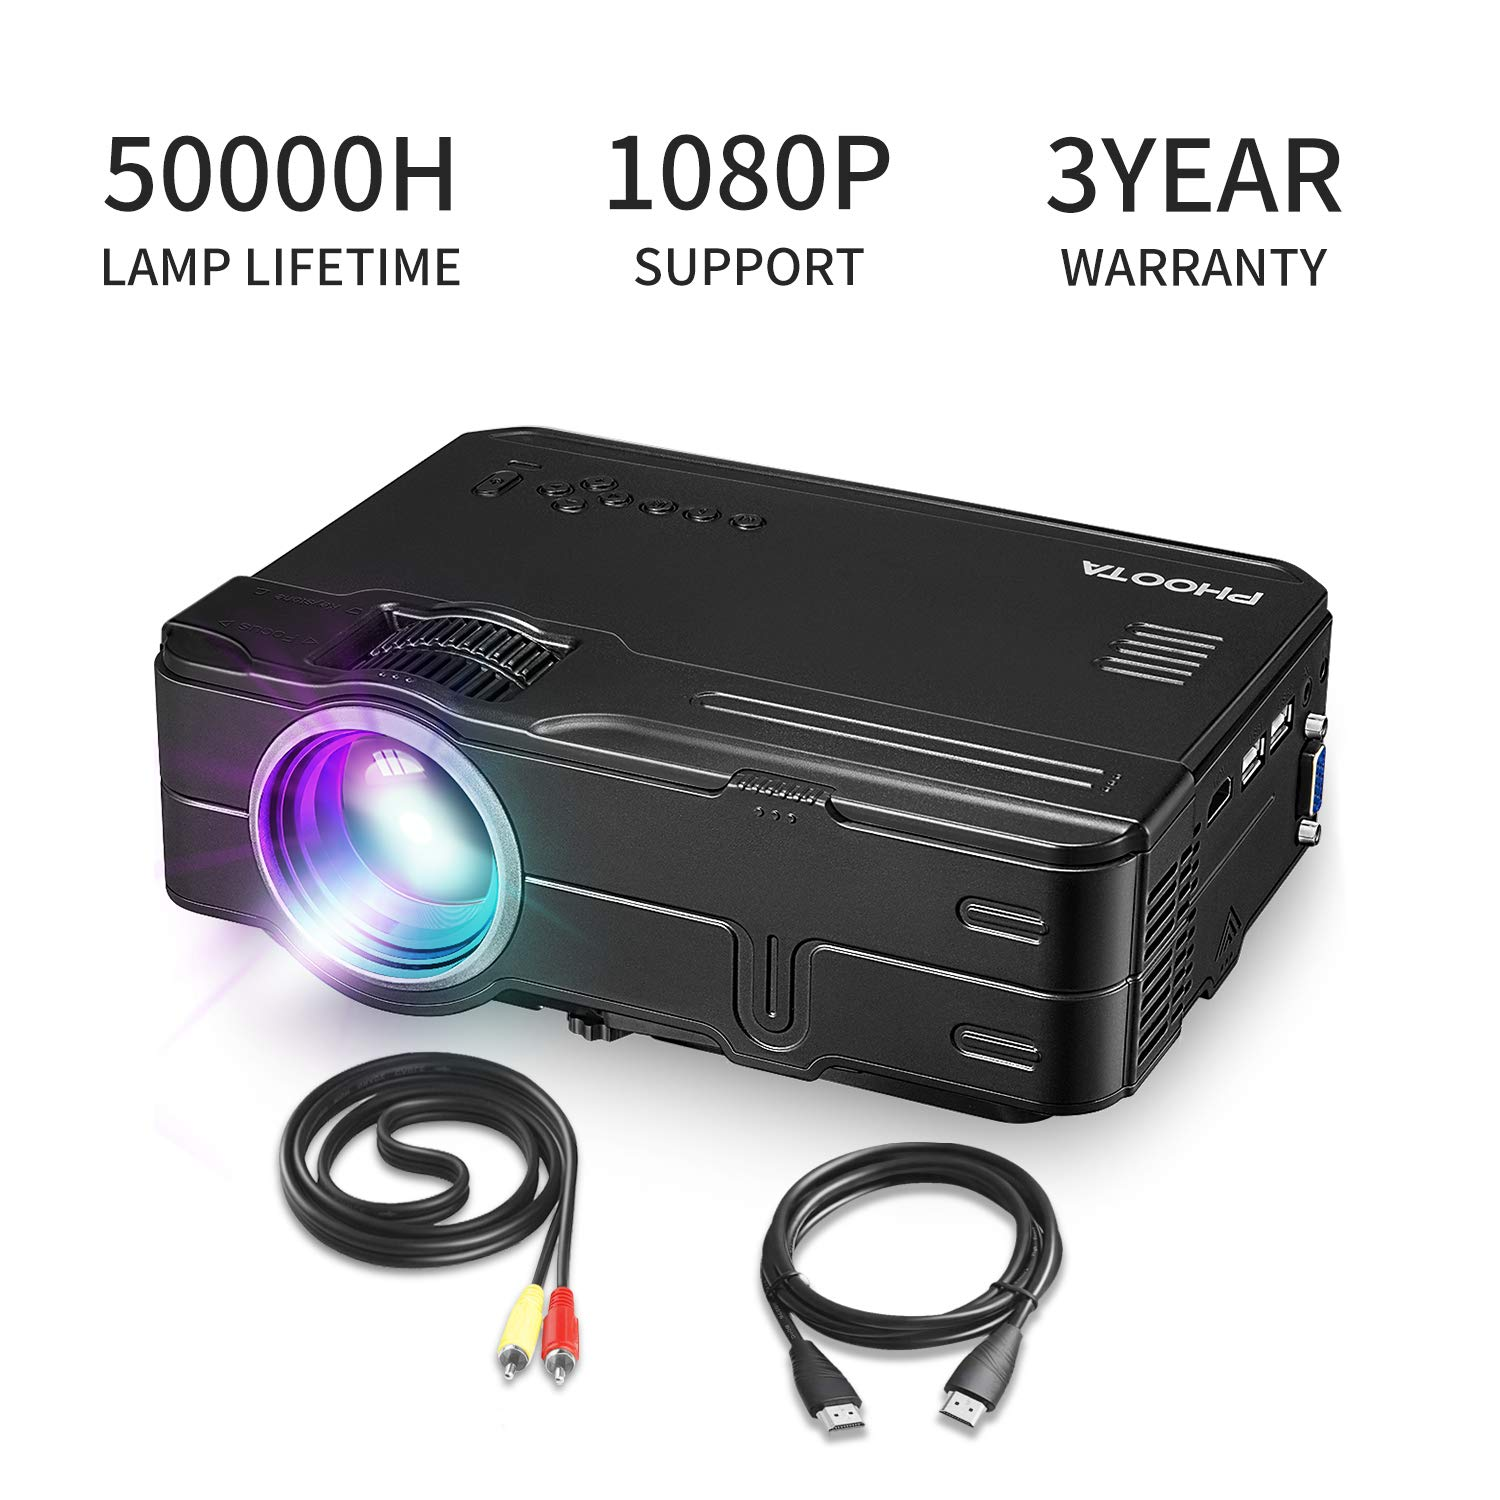 PHOOTA Mini Projector, 2019 Upgraded Portable LED Video Projector with 50,000 Hrs LED Lamp Life, 2400 Lux Full HD 1080P and 170'' Display Supported, Compatible with HDMI, VGA, USB, AV, Laptop by PHOOTA